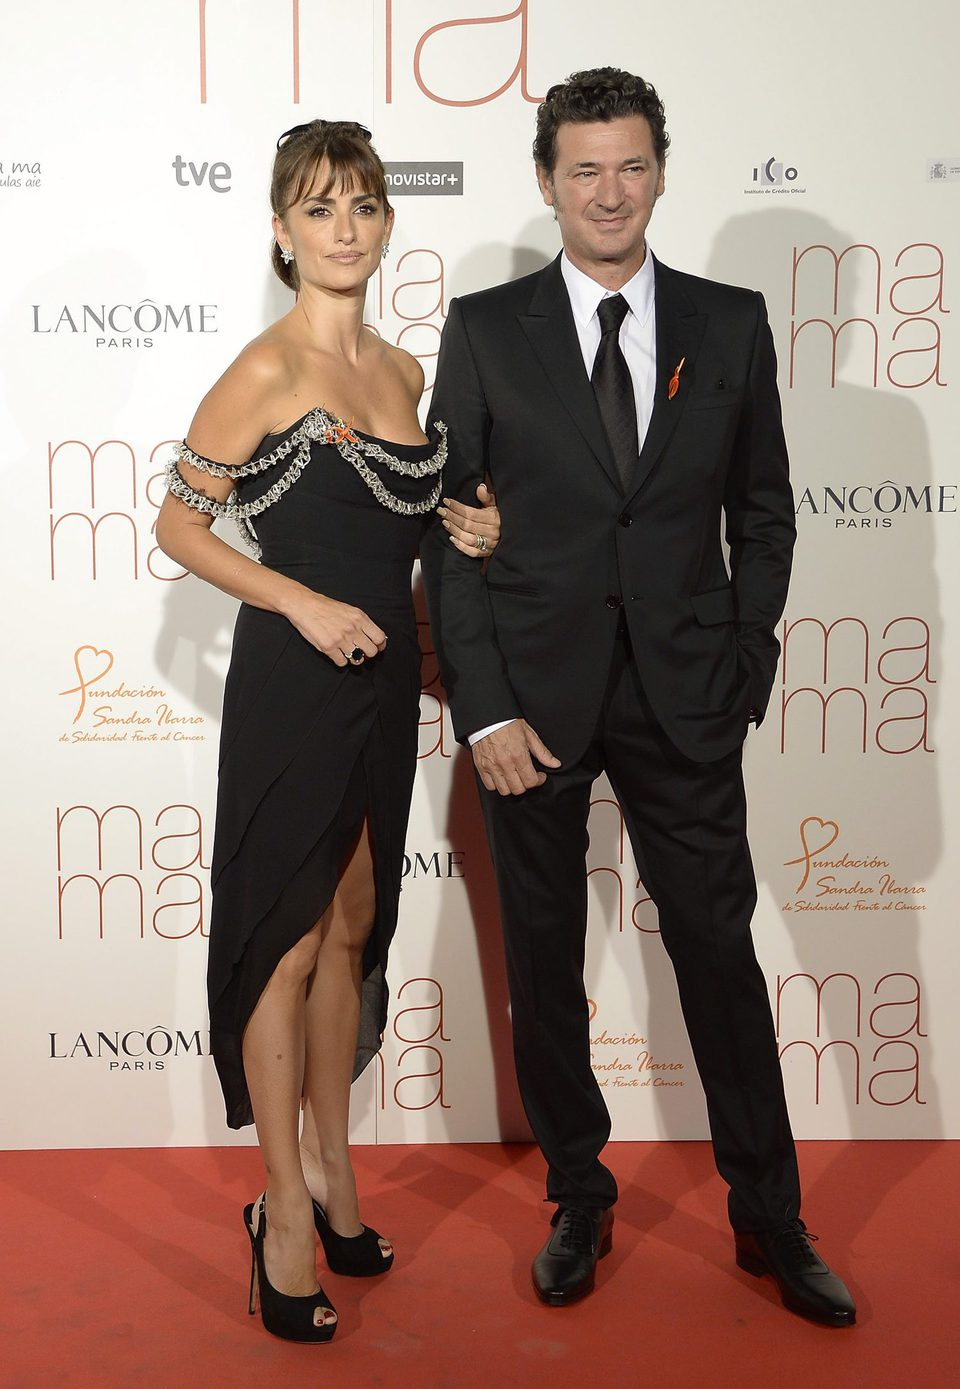 Penélope Cruz and Julio Médem at the 'Ma ma' premiere in Madrid